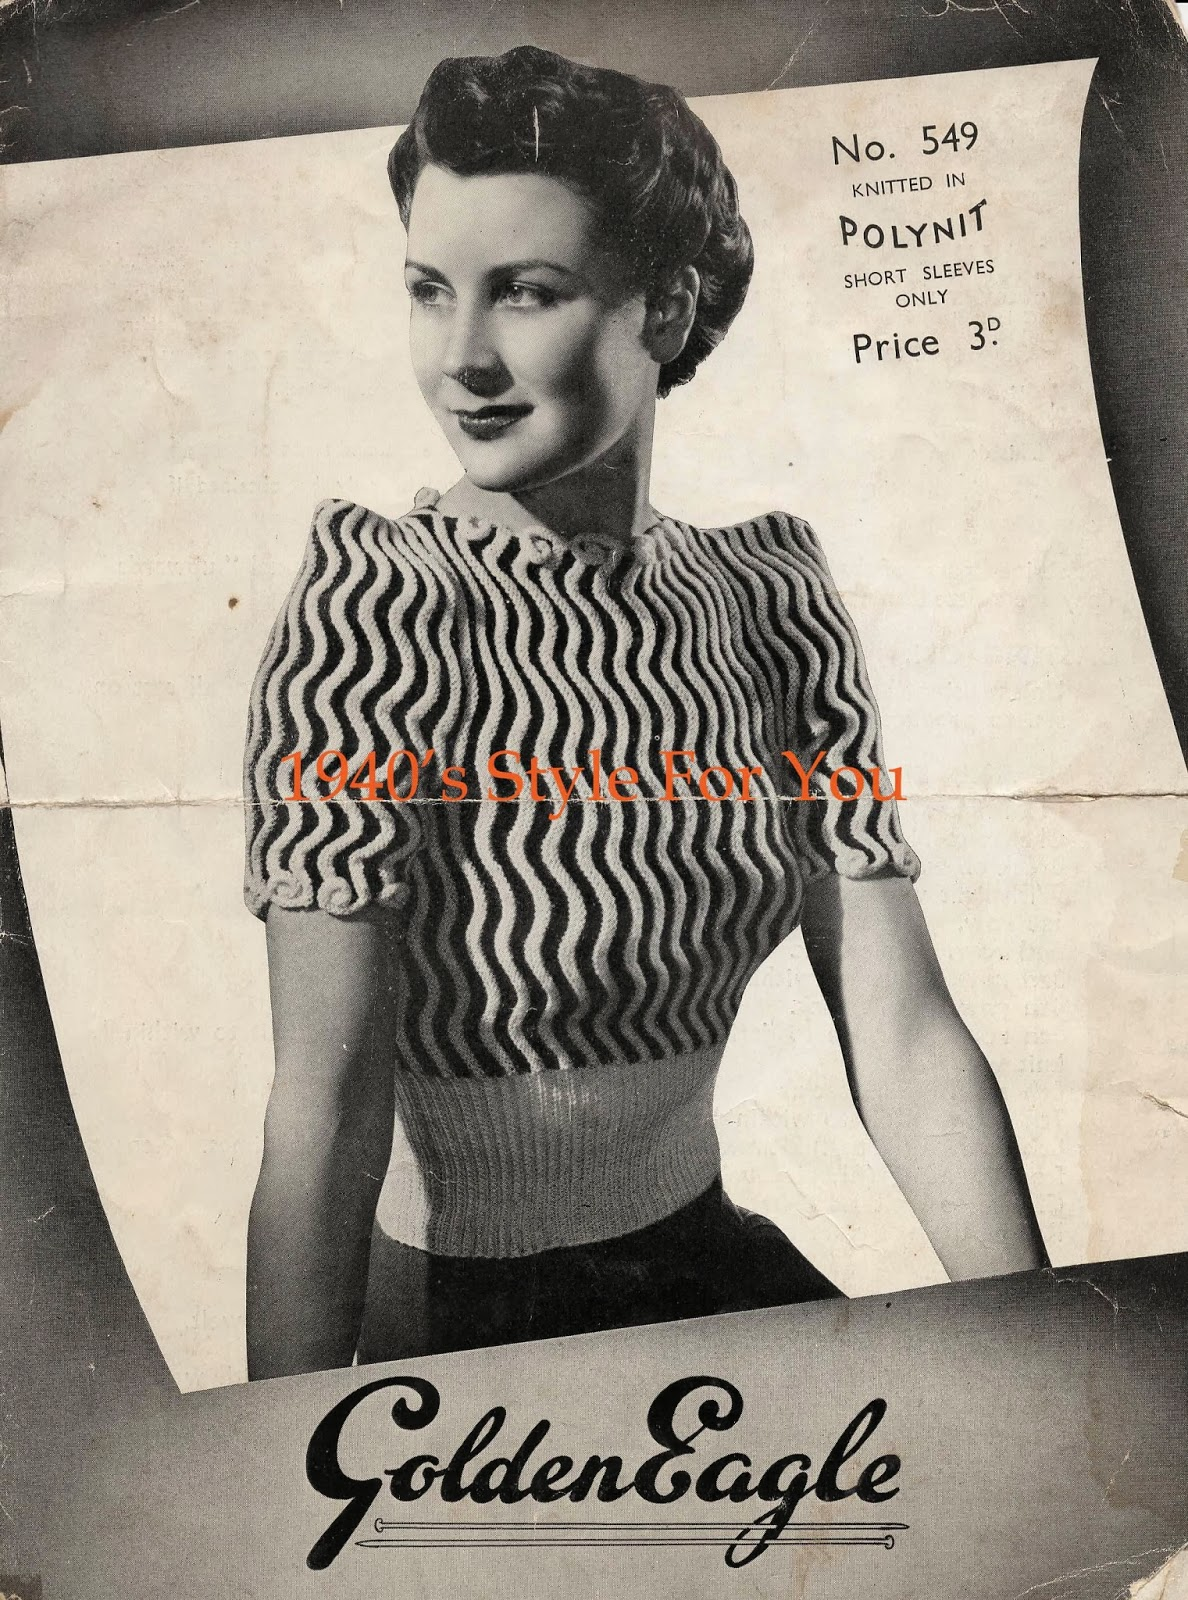 1940's Knitting - Seawaves Jumper FREE KNITTING PATTERN